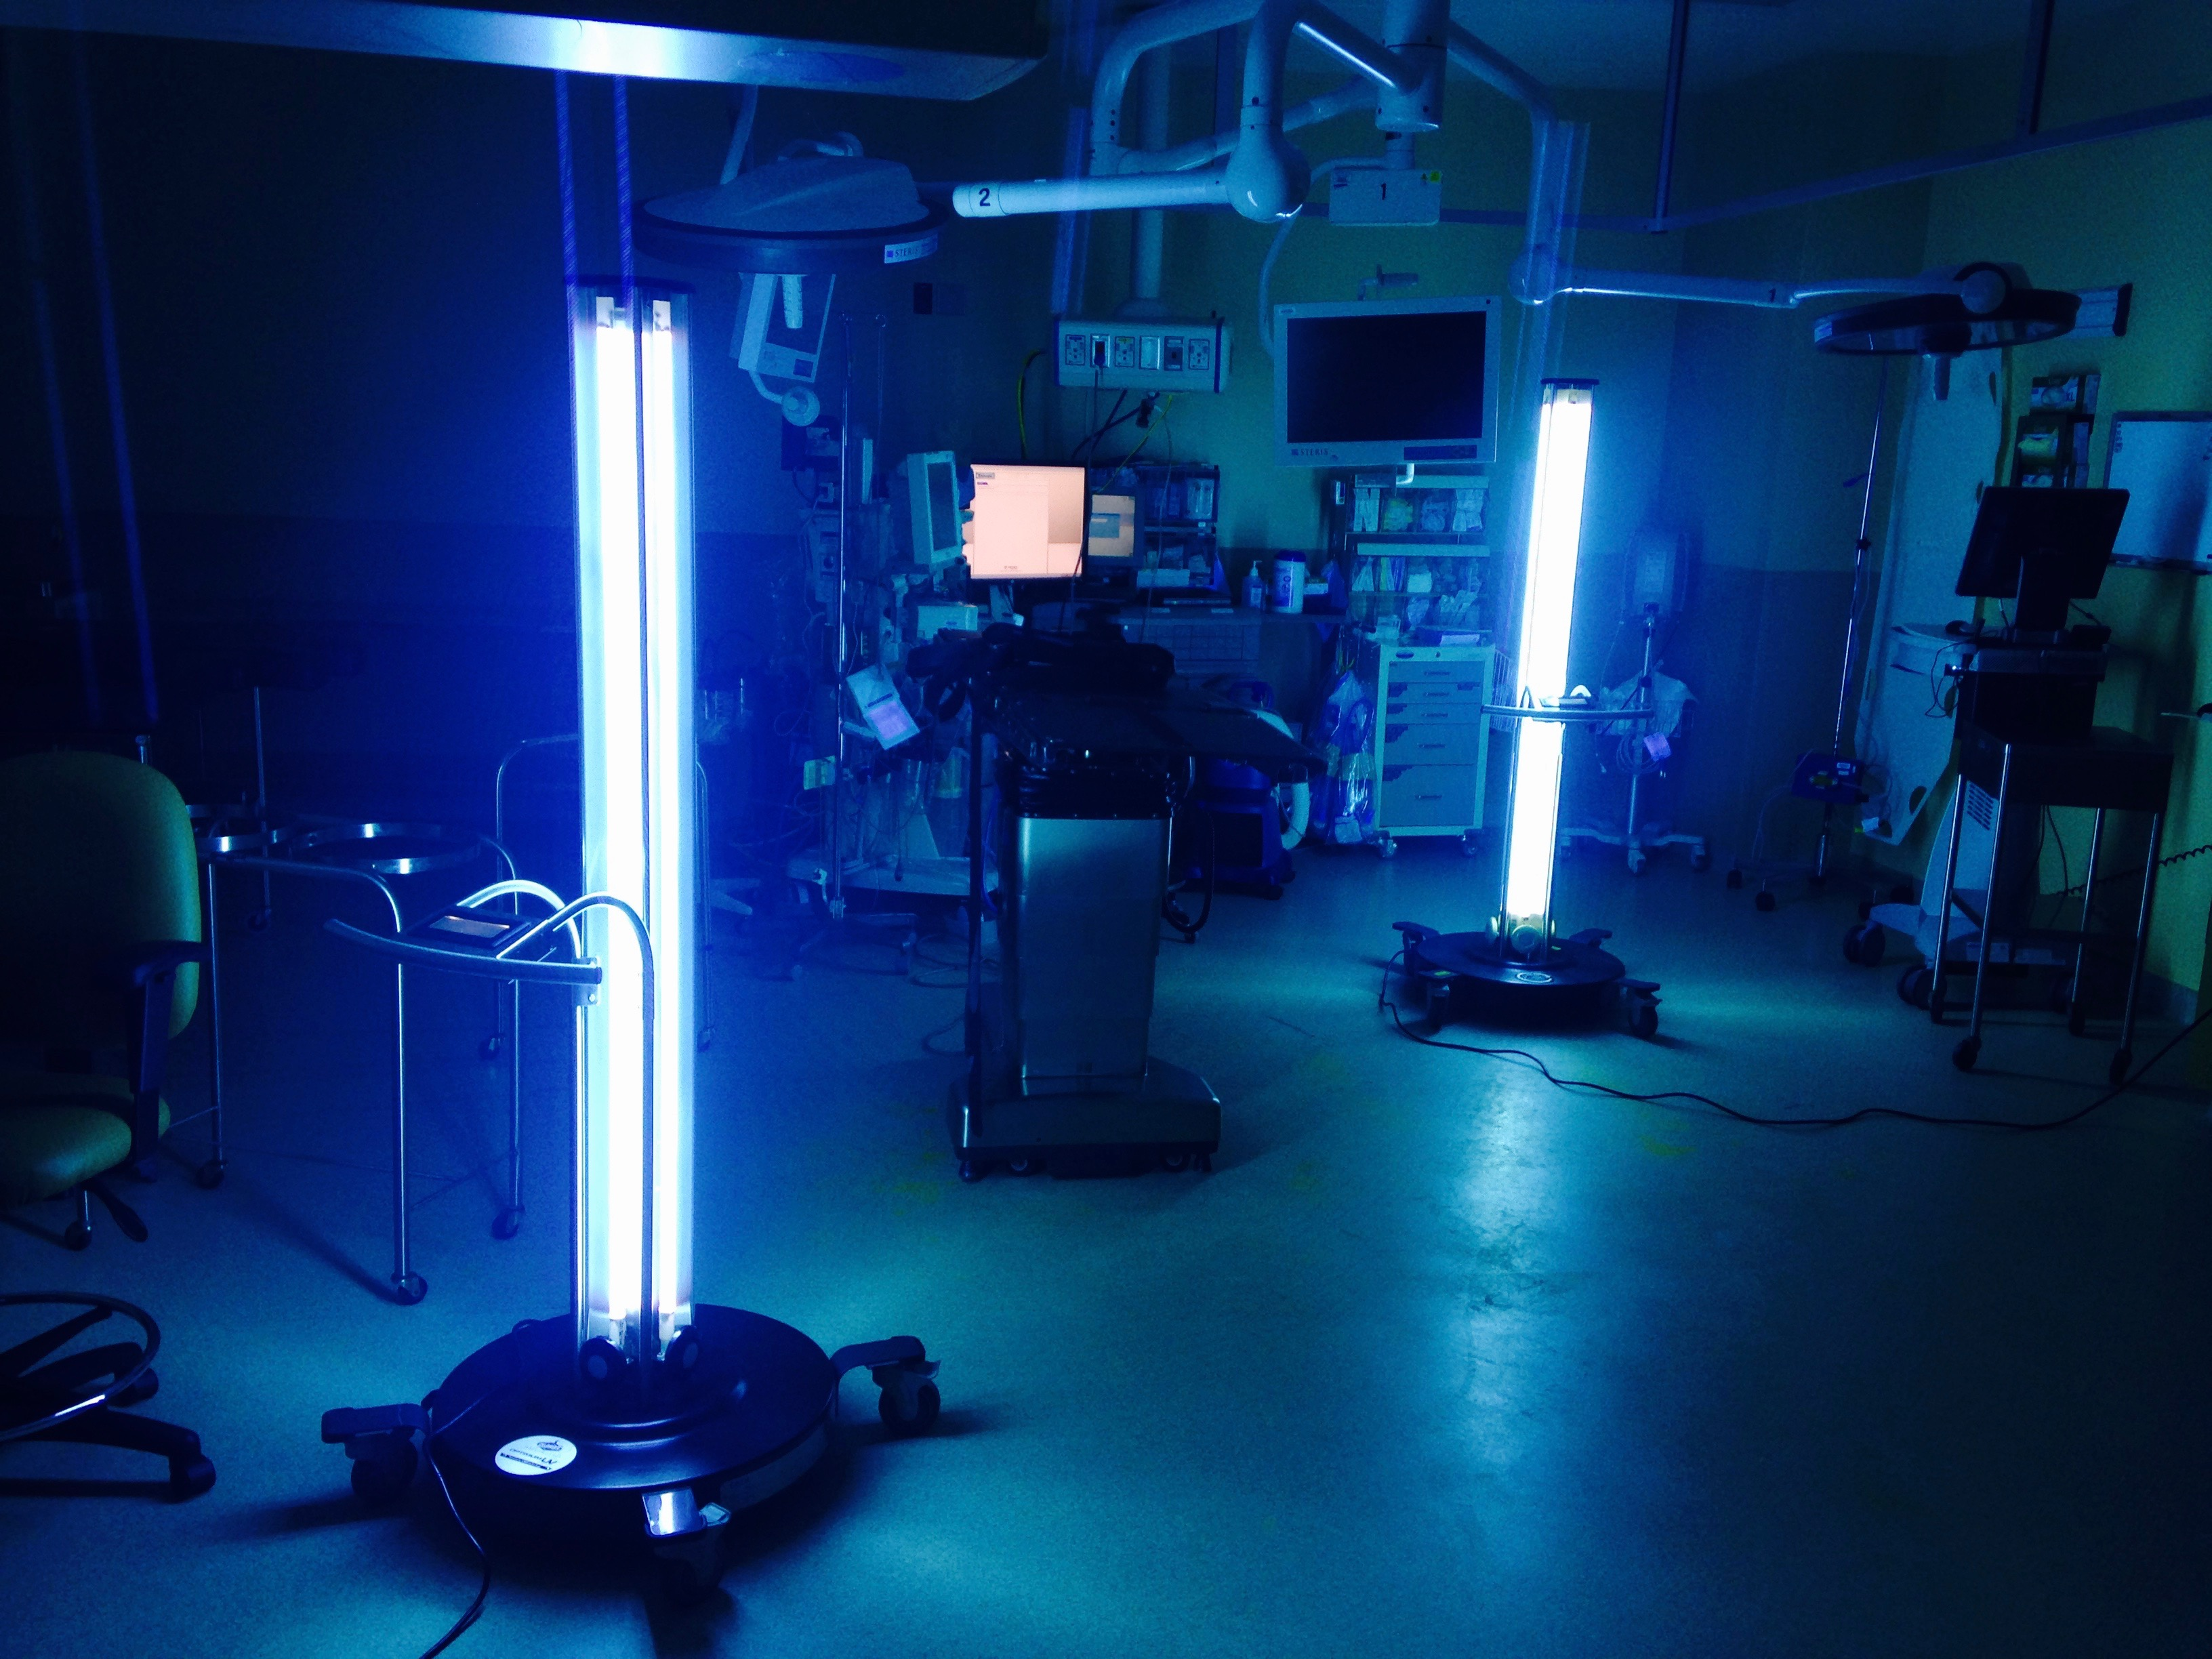 UV-C light in hospital room